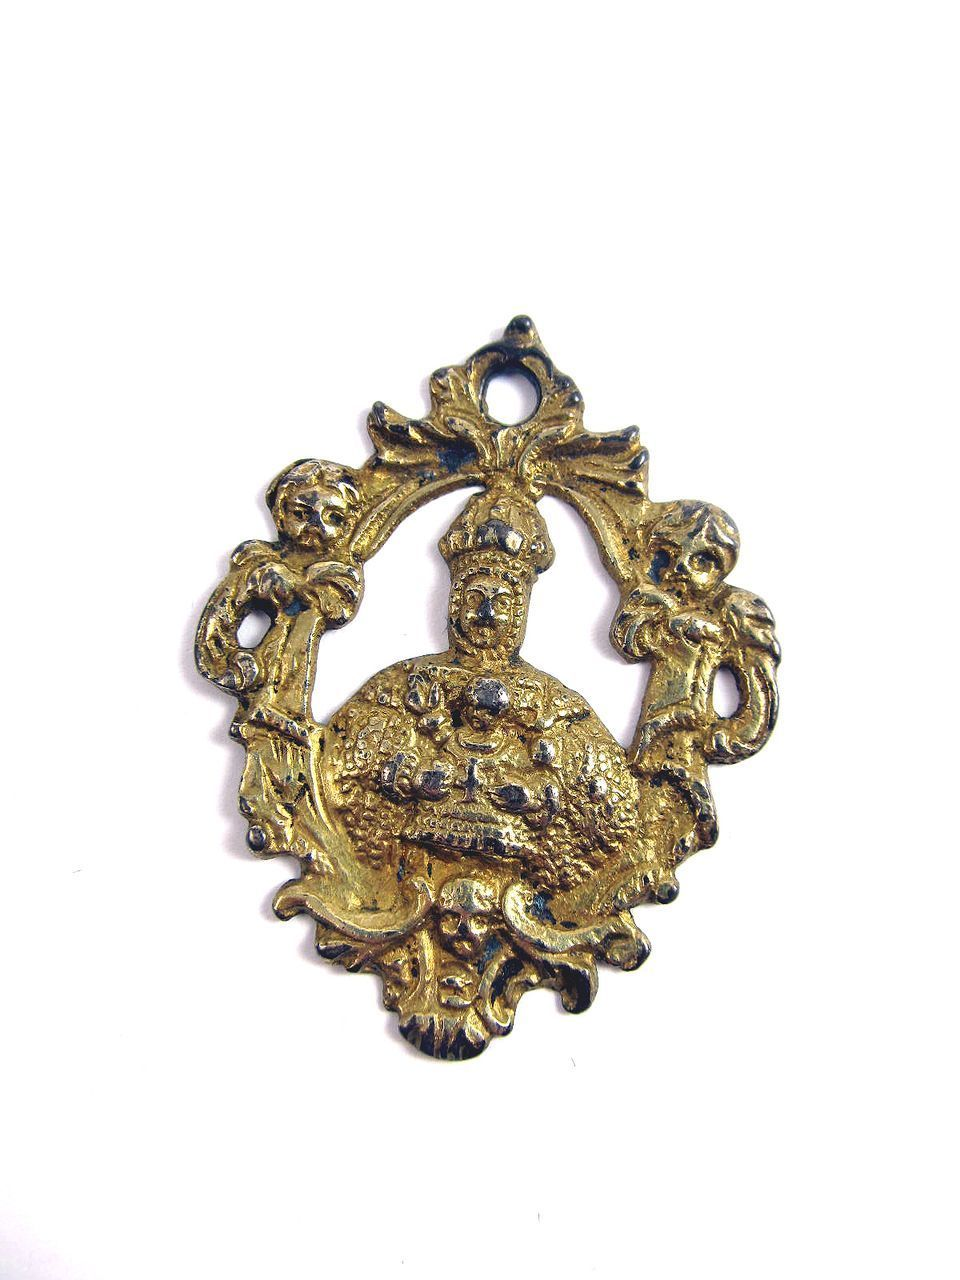 RARE Late Renaissance Silver Gilt Pendant of Mary/Jesus Enthroned, c.1600!